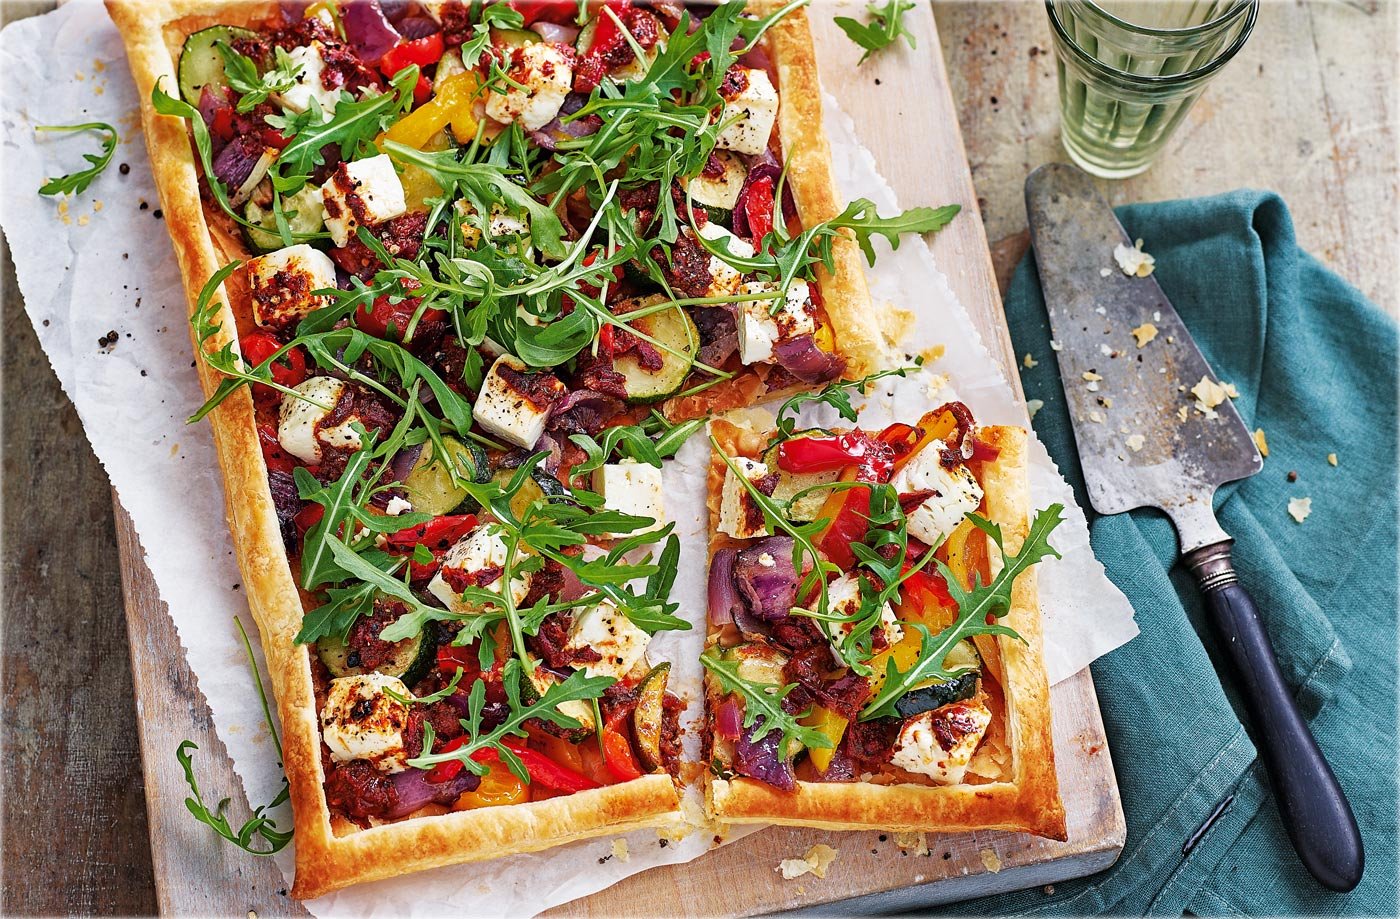 Harissa vegetable tart recipe